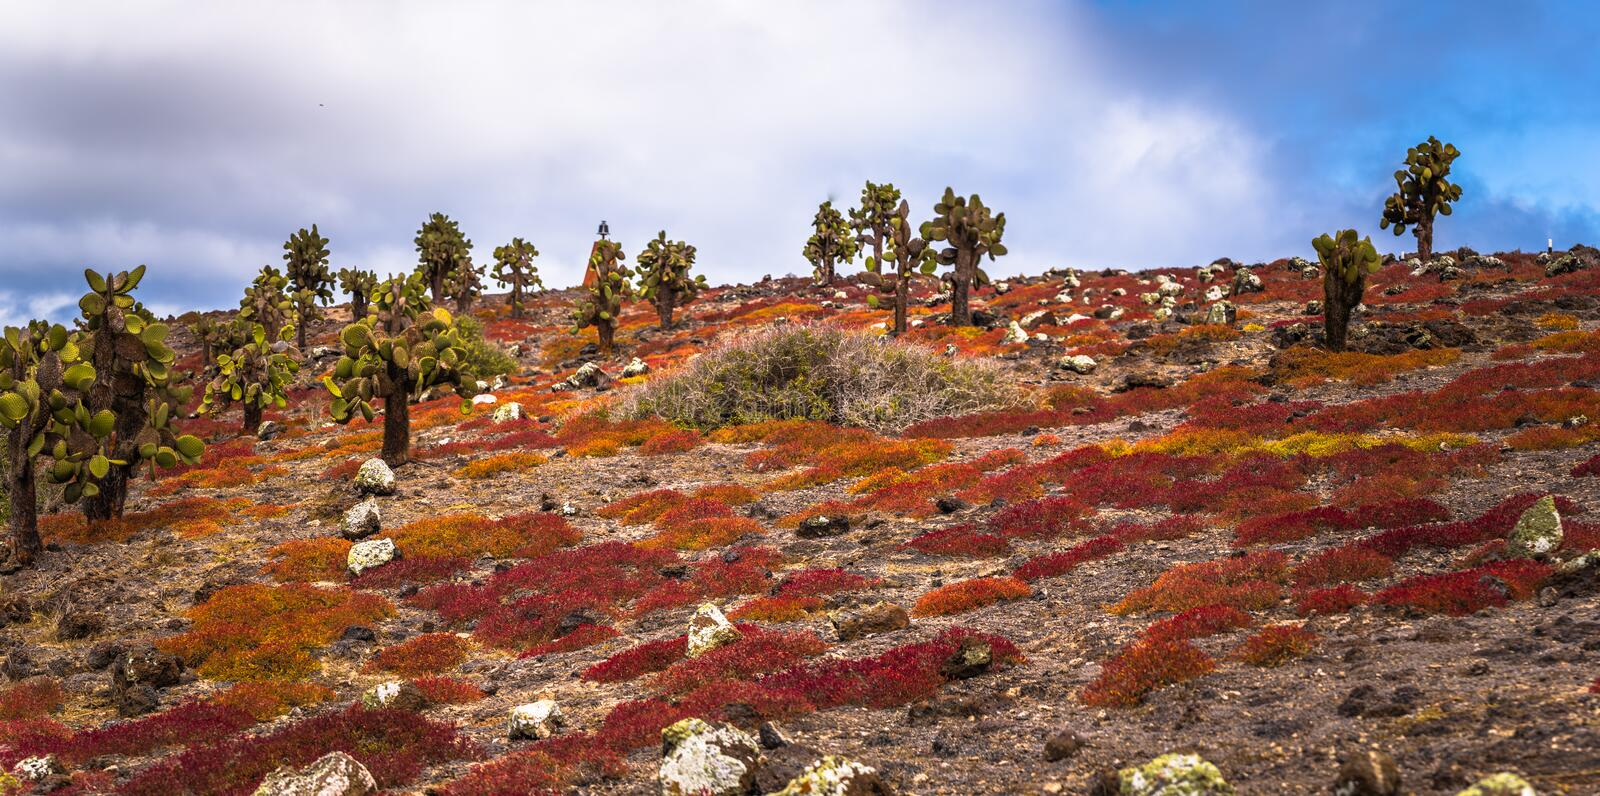 Galapagos Islands - August 24, 2017: Endemic cactus trees in Plaza Sur island, Galapagos Islands, Ecuador royalty free stock photo